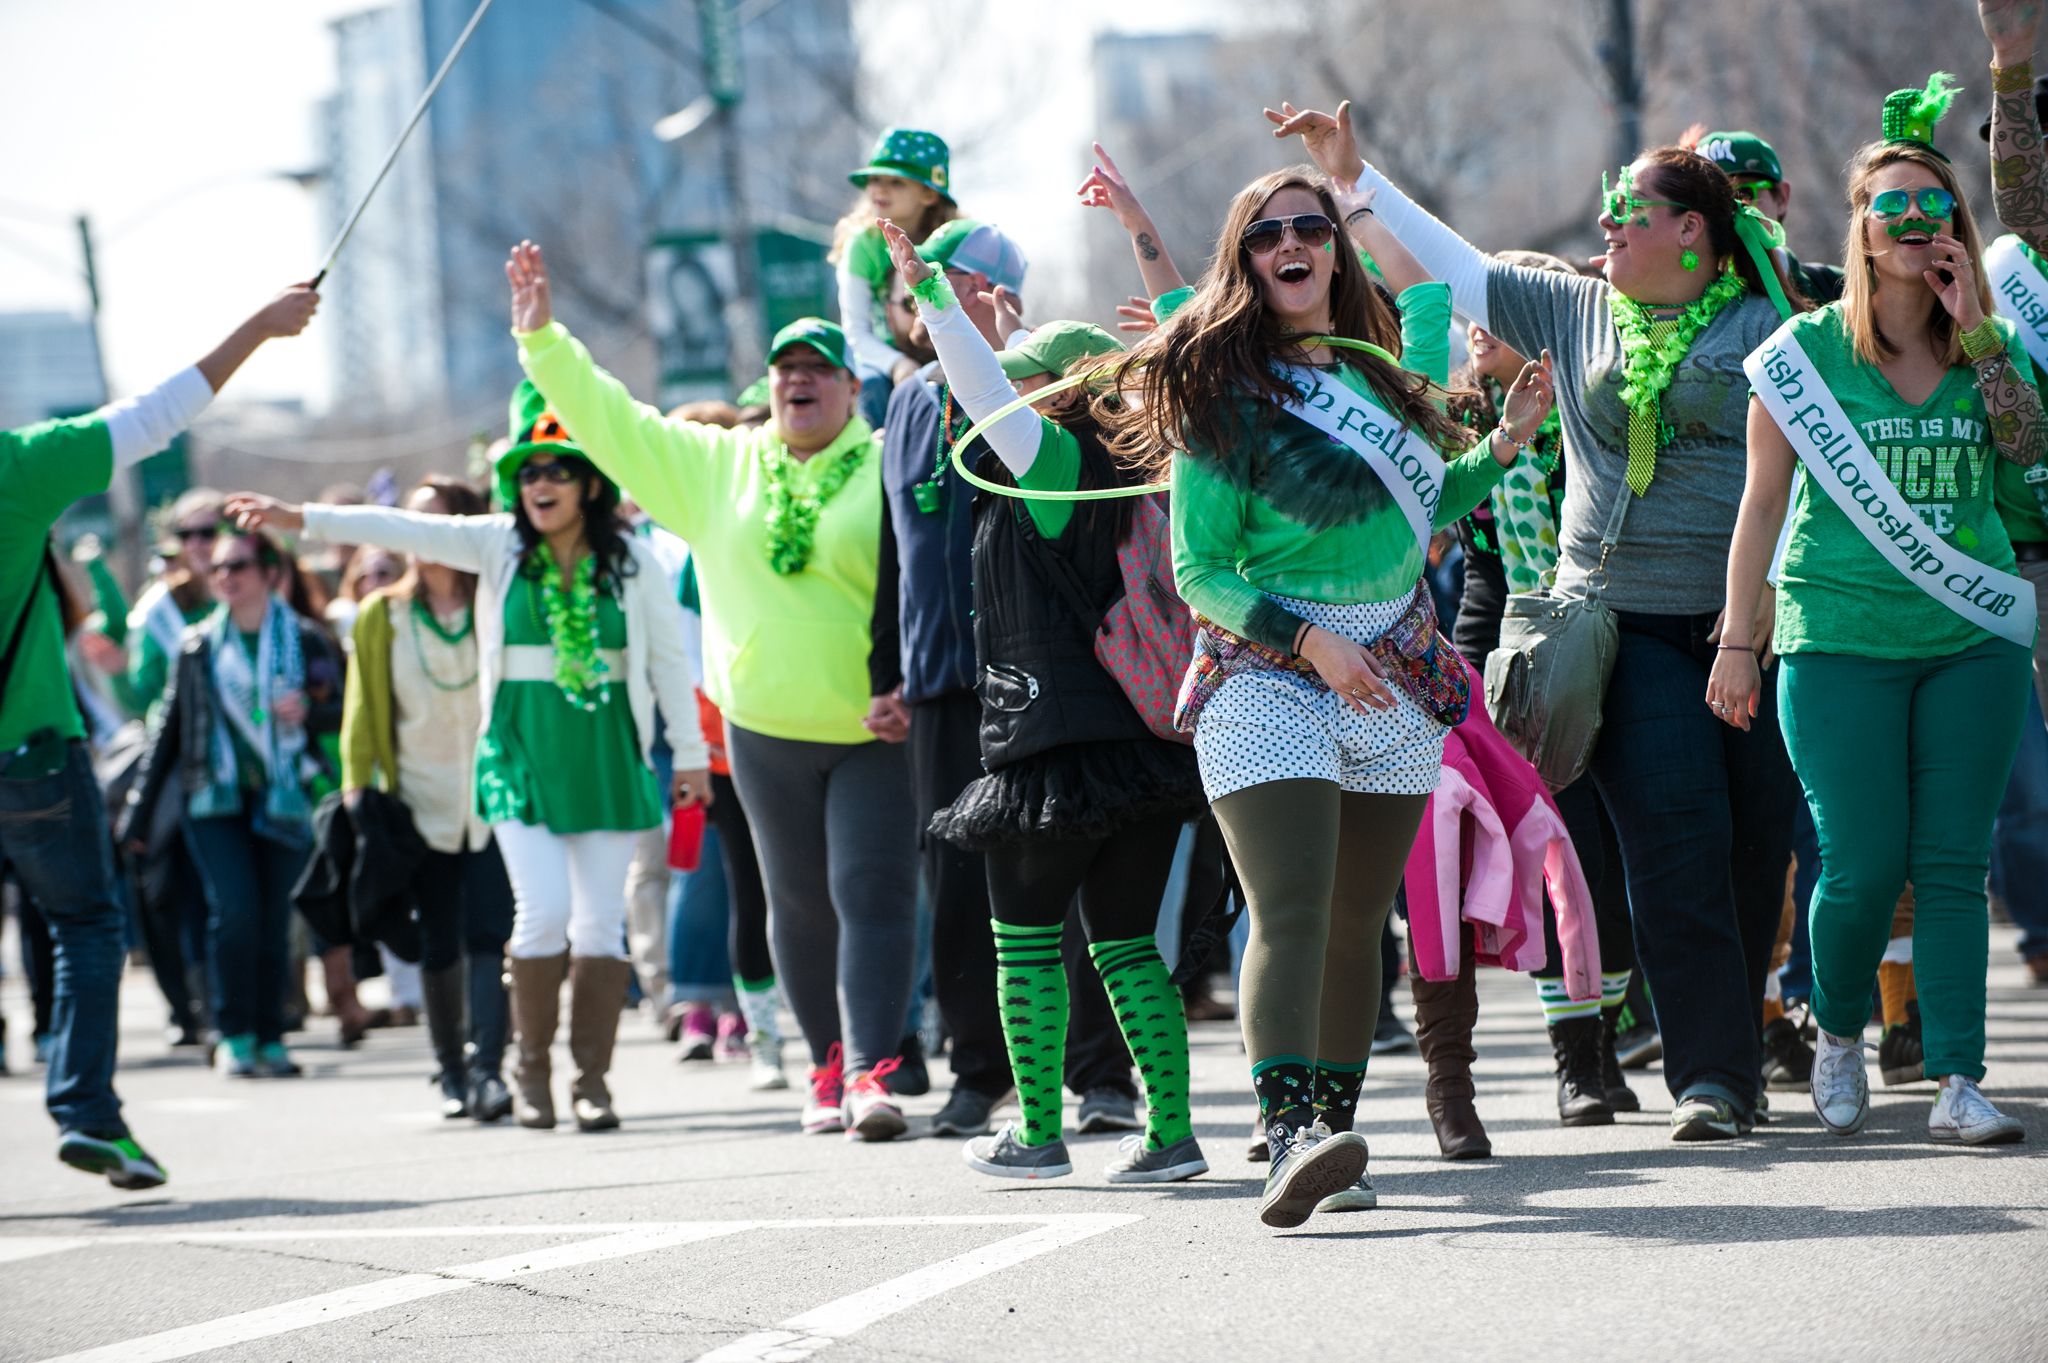 The Annual San Diego St Patricks Day Parade largest Parade west of the Mississippi will step off on Saturday March 16th 2019 at 1030 am on Fifth Avenue at